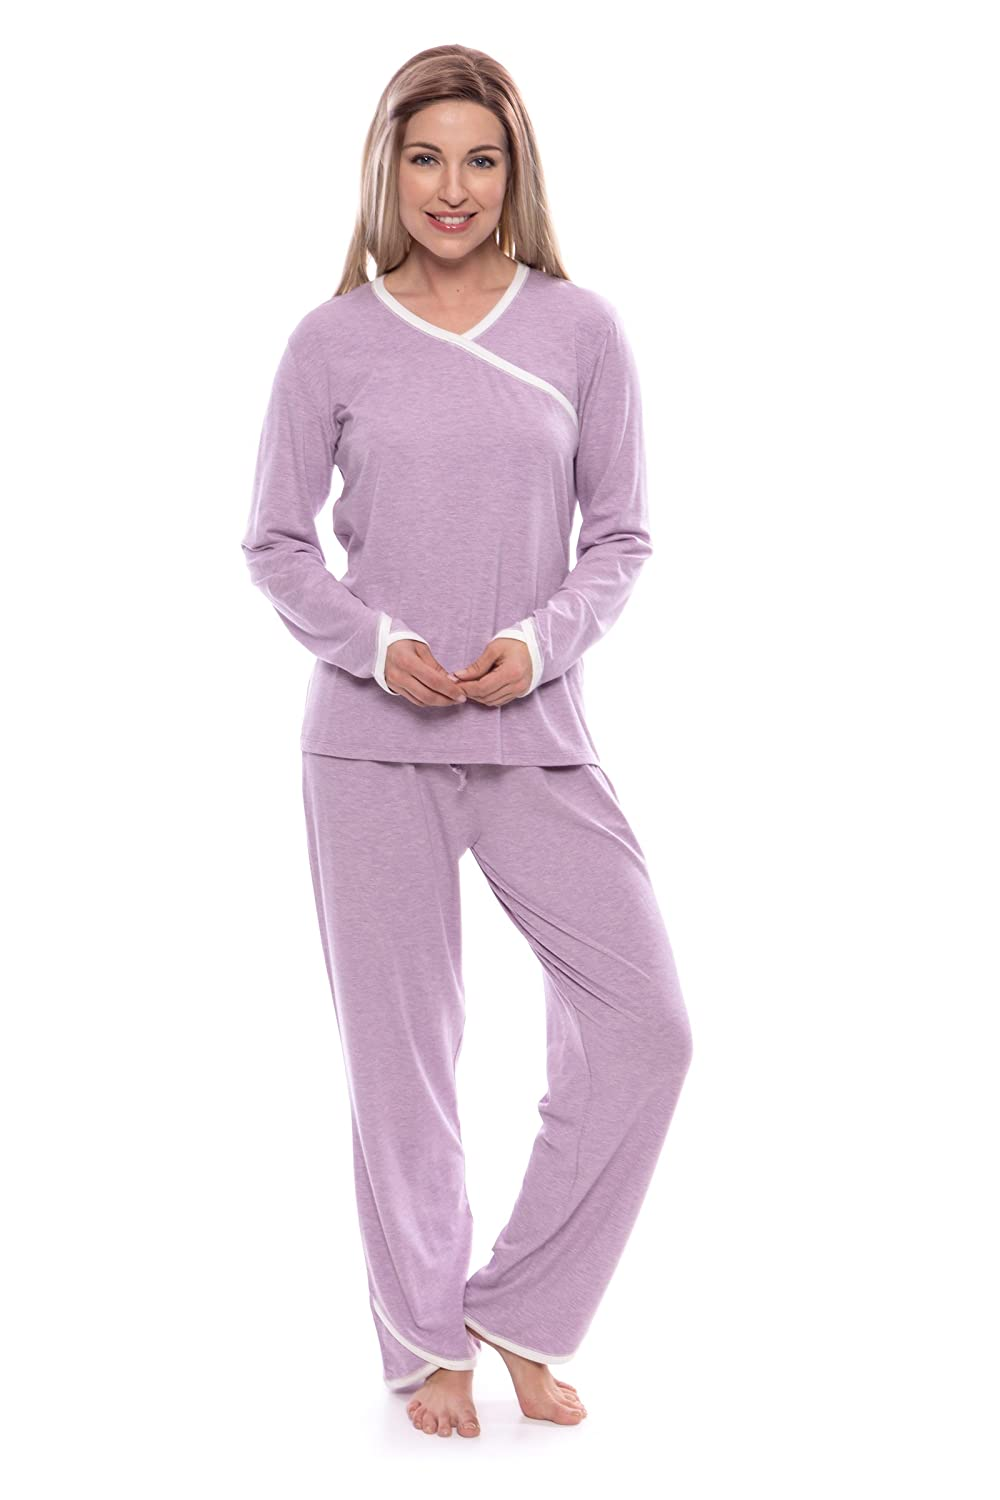 Pajamas for men - an integral part of the wardrobe